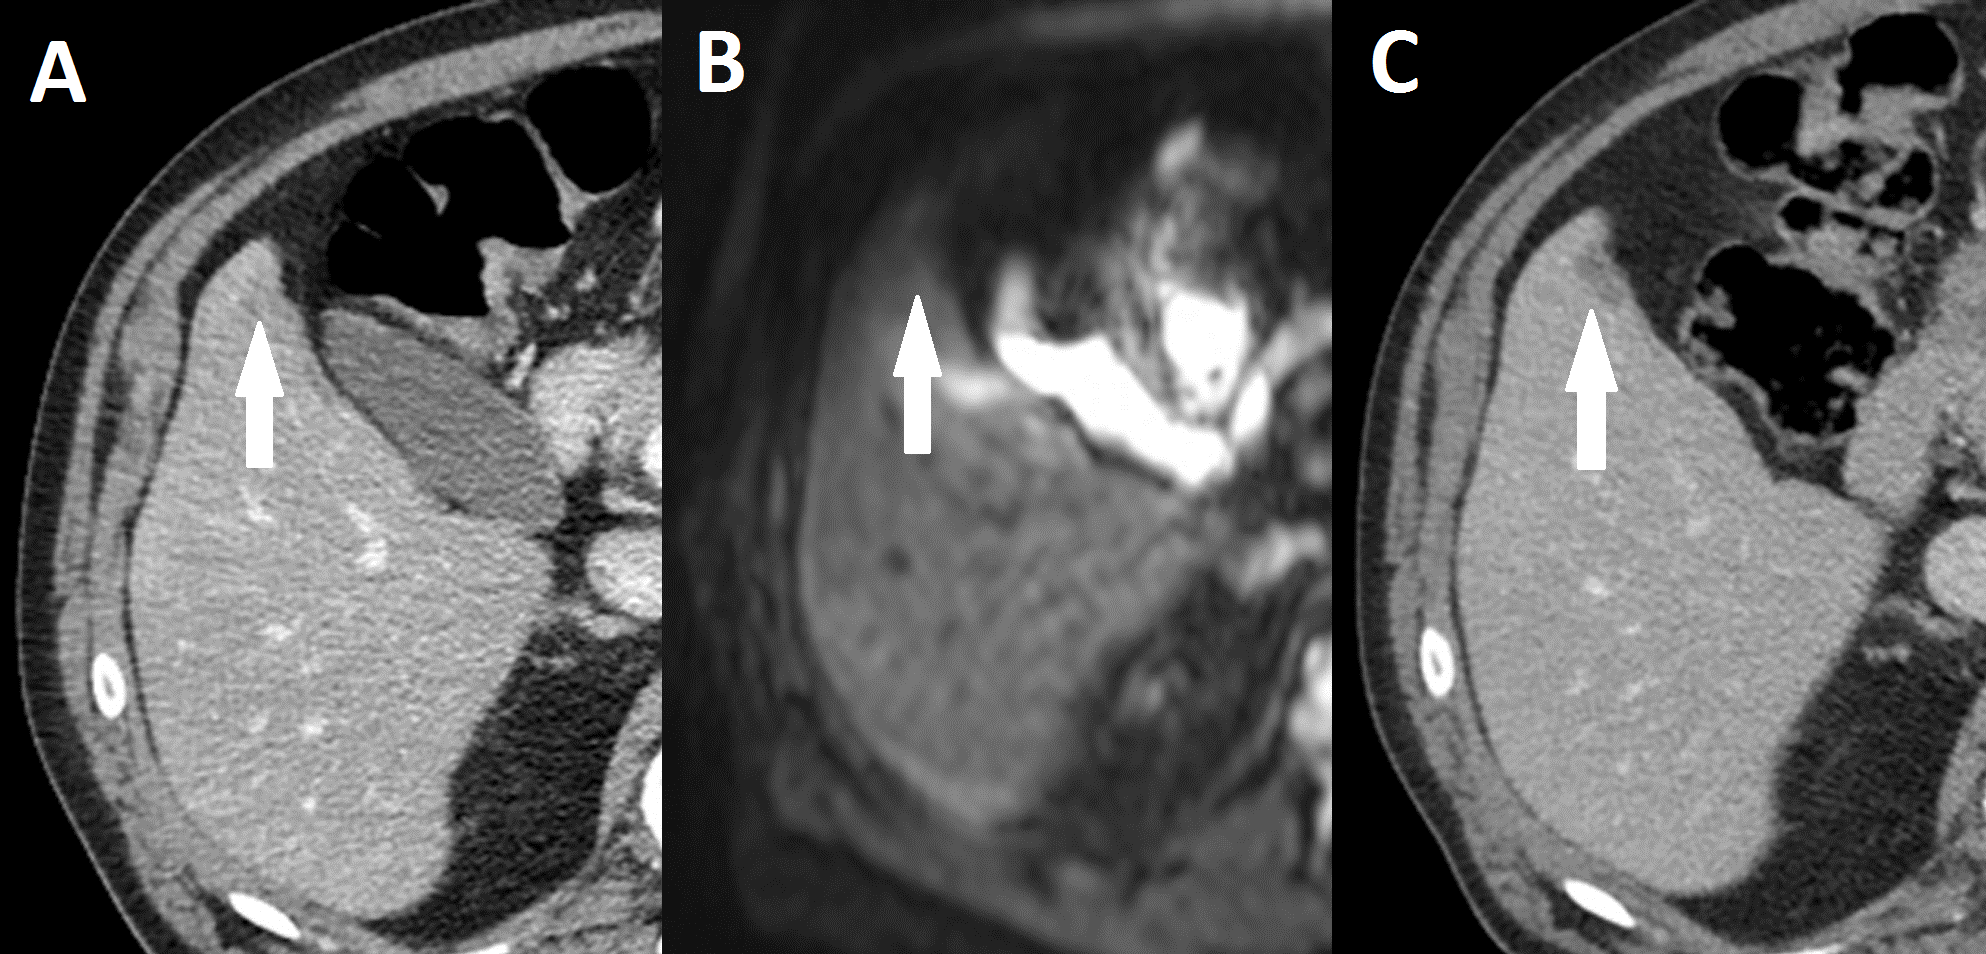 Preoperative Ct Versus Diffusion Weighted Magnetic Resonance Imaging Of The Liver In Patients With Rectal Cancer A Prospective Randomized Trial Peerj